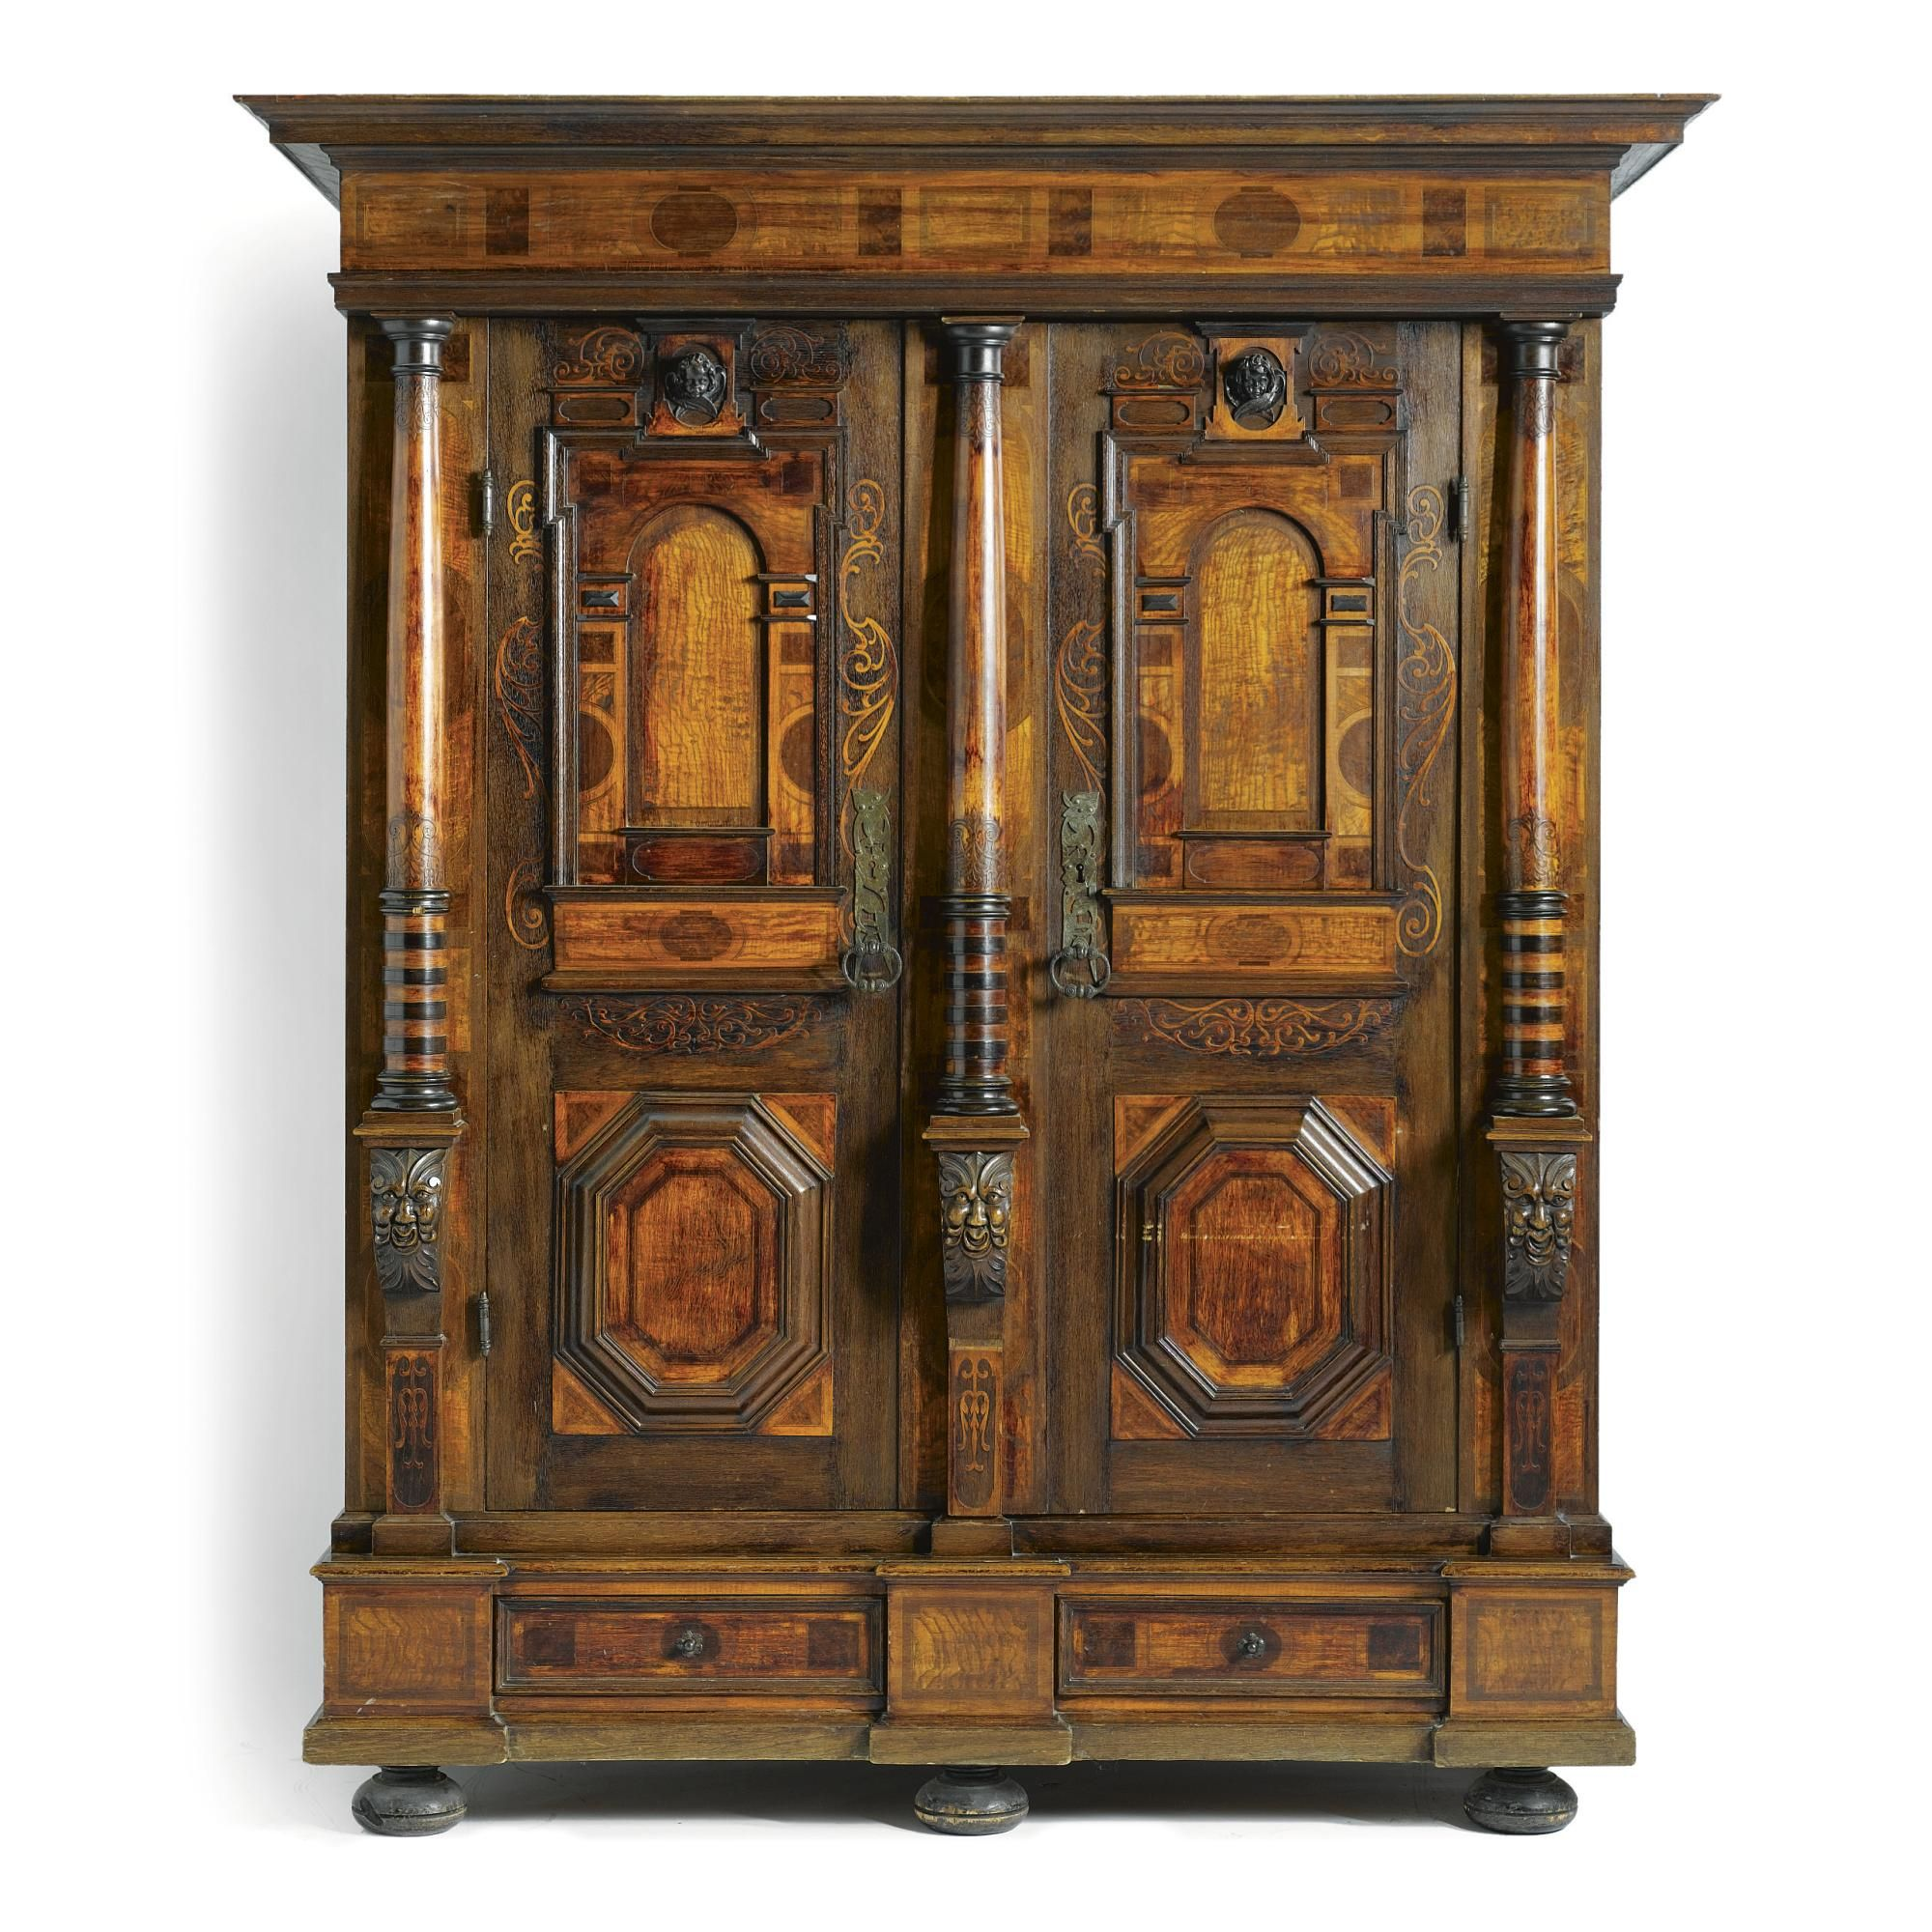 A South German Carved Oak Elm And Fruitwood Parquetry Cupboard Br P In Renaissance Style 19th Century P Lot Antike Mobel Barock Mobel Alte Mobel